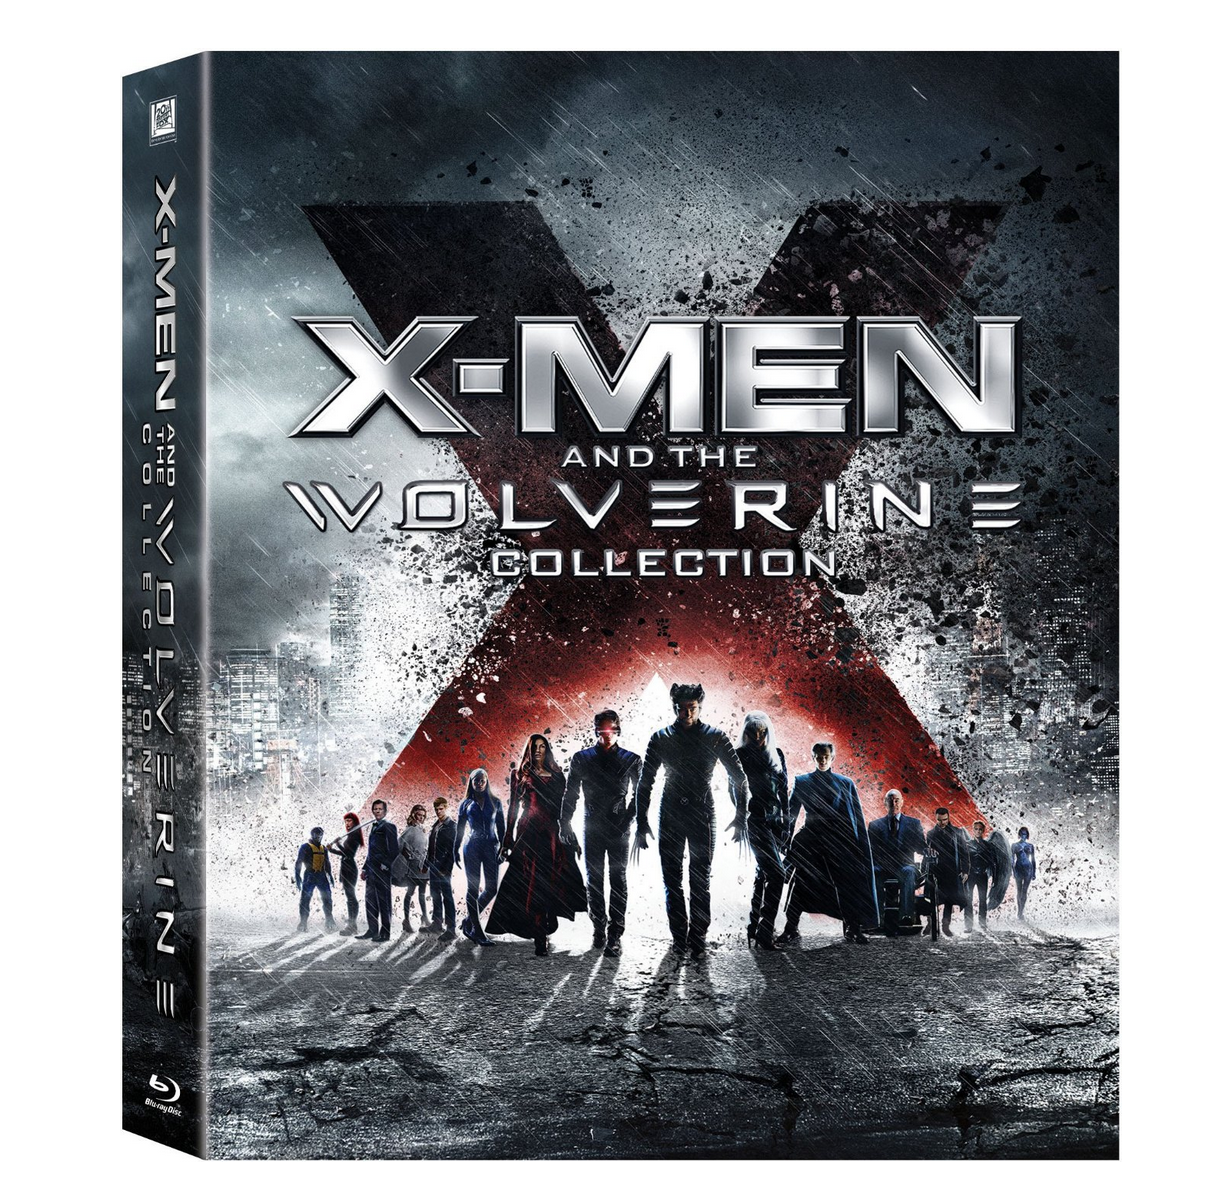 X-Men and the Wolverine Collection (Blu-Ray)  Only $21.99 (Reg. $69.99!)